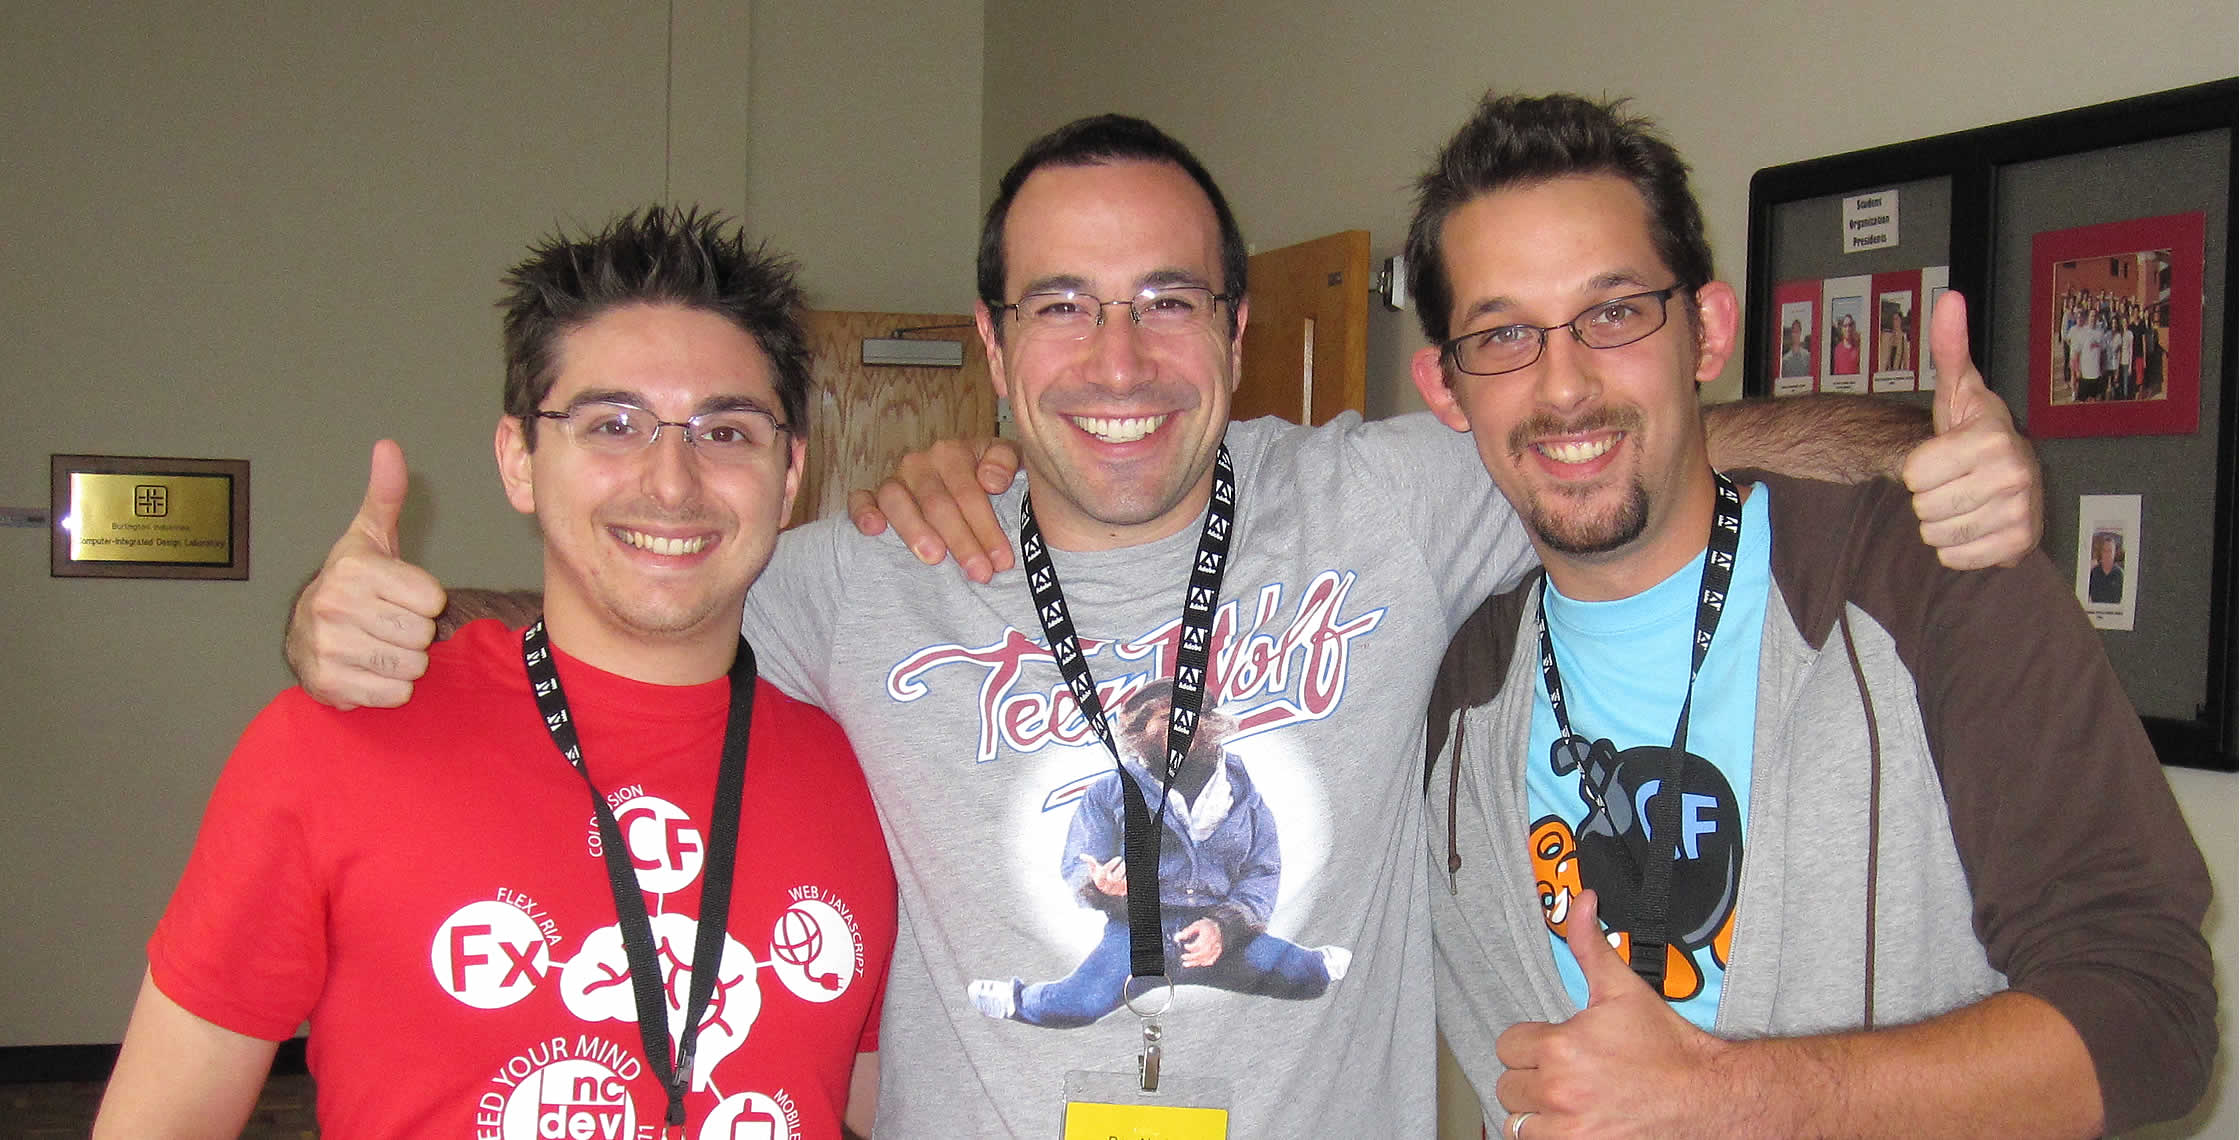 Ben Nadel at NCDevCon 2011 (Raleigh, NC) with: Anthony Mineo and Matthew Clemente